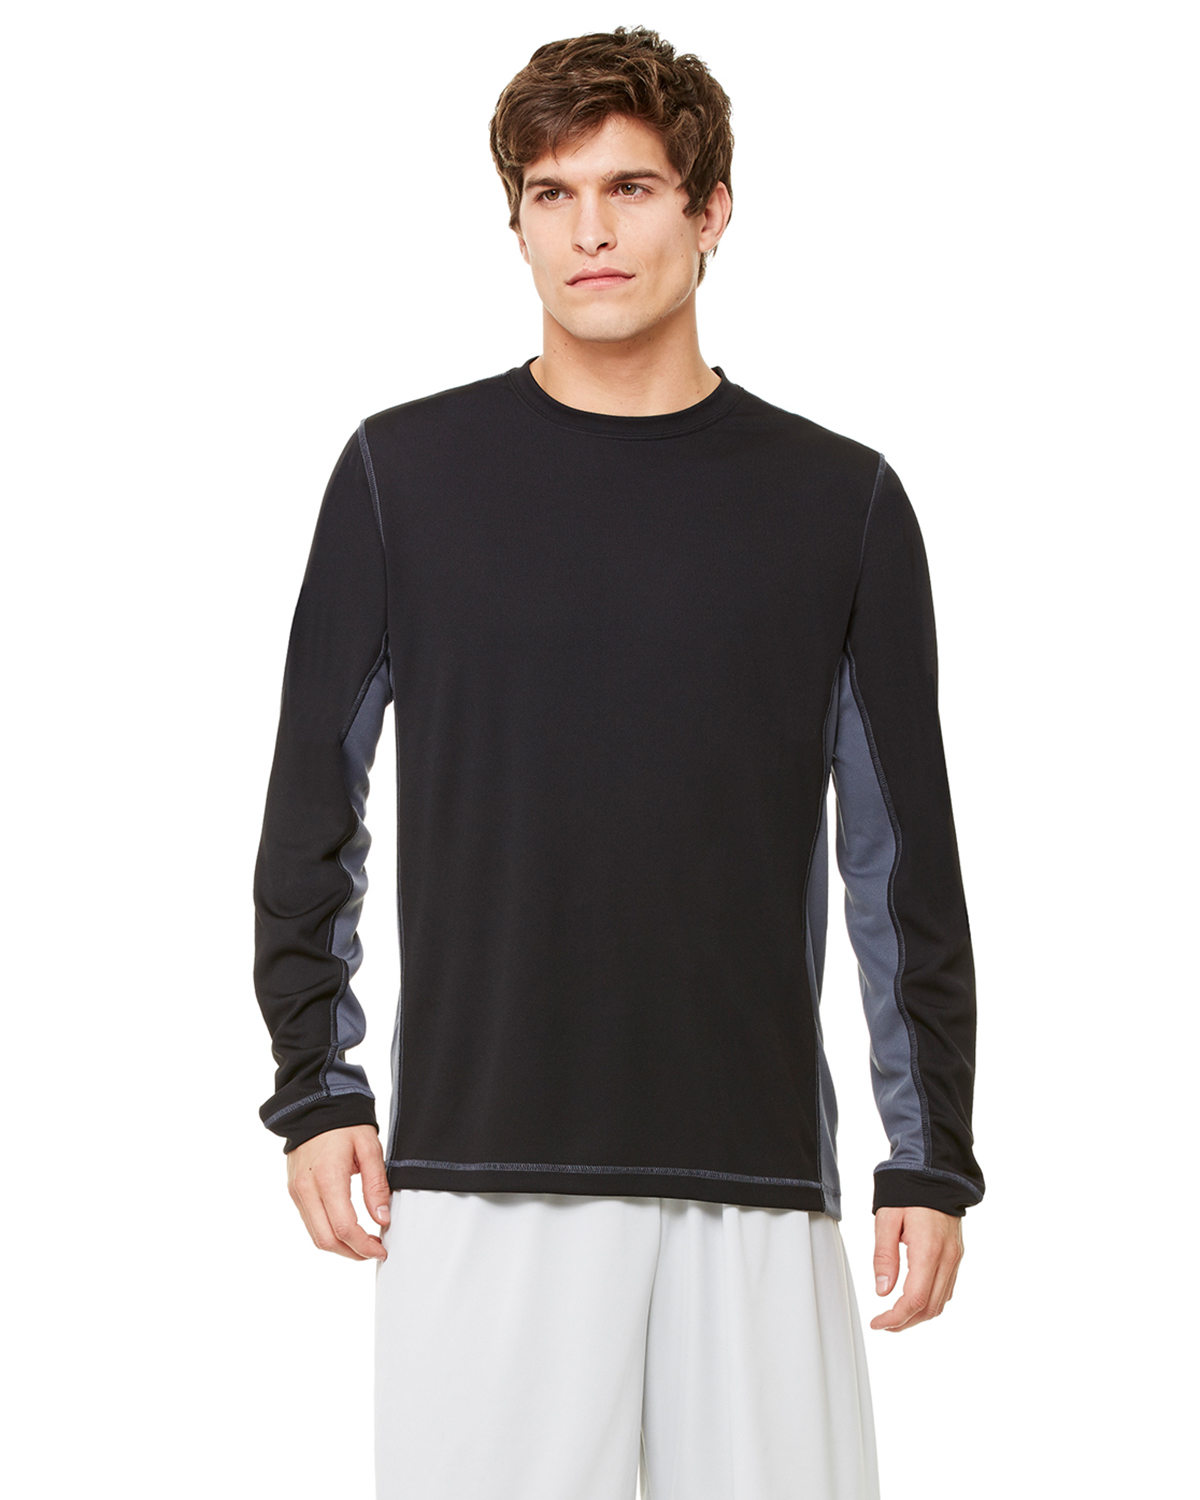 alo M3021 Long Sleeve Stitched Edge T-Shirt